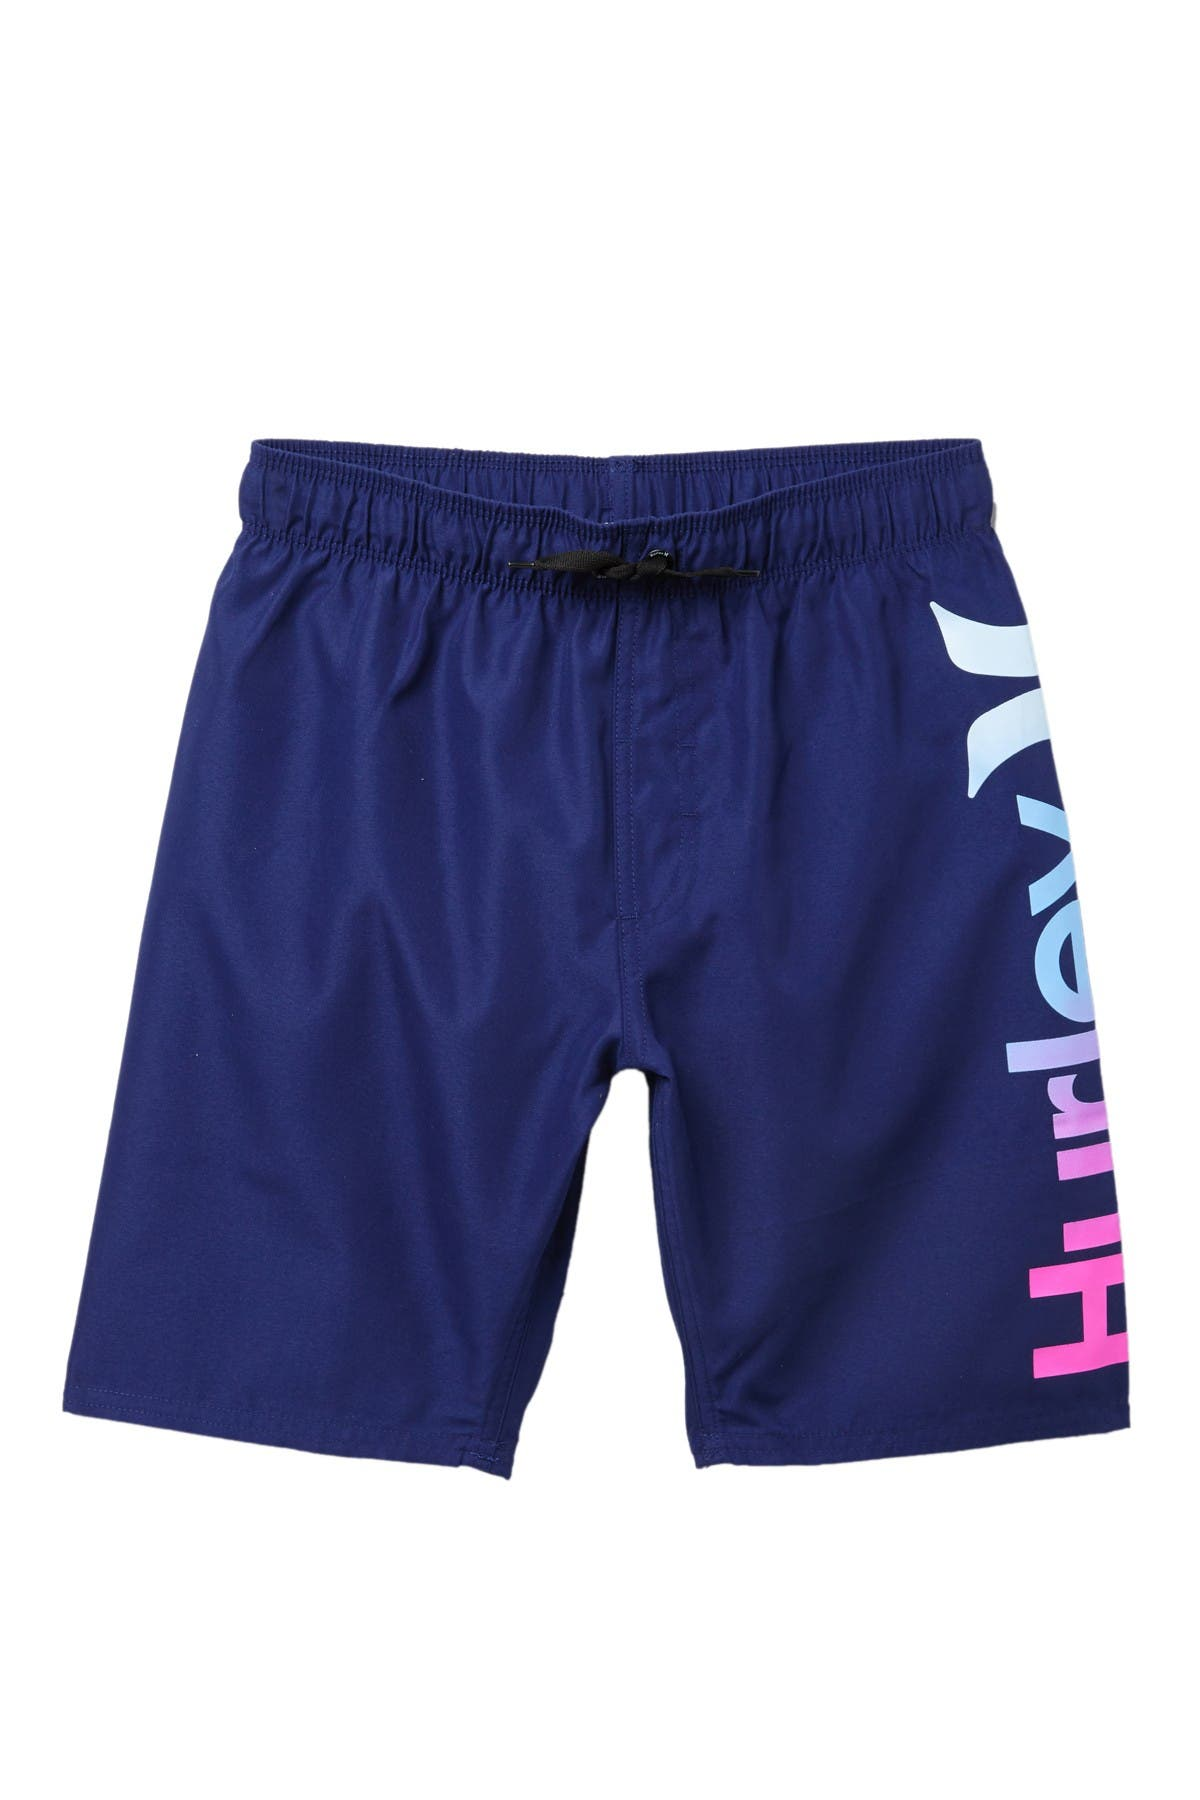 Image of Hurley One & Only Gradient Pull-On Shorts